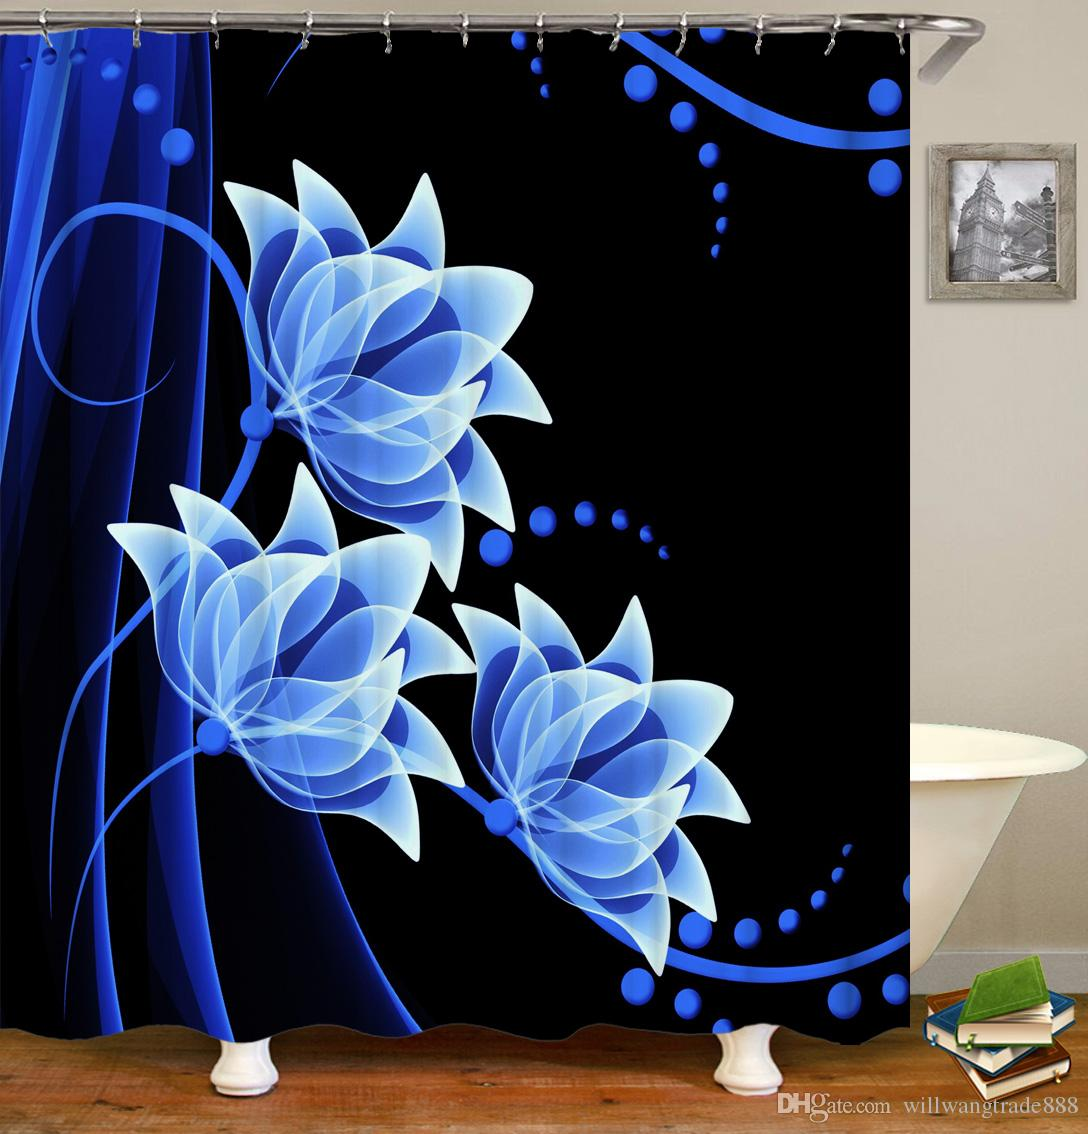 2019 Waterproof Gorgeous Flowers Roses Blue Lotus Water Lily Shower Curtain Digital Printing Bath With Rings 71x71INCH From Willwangtrade888